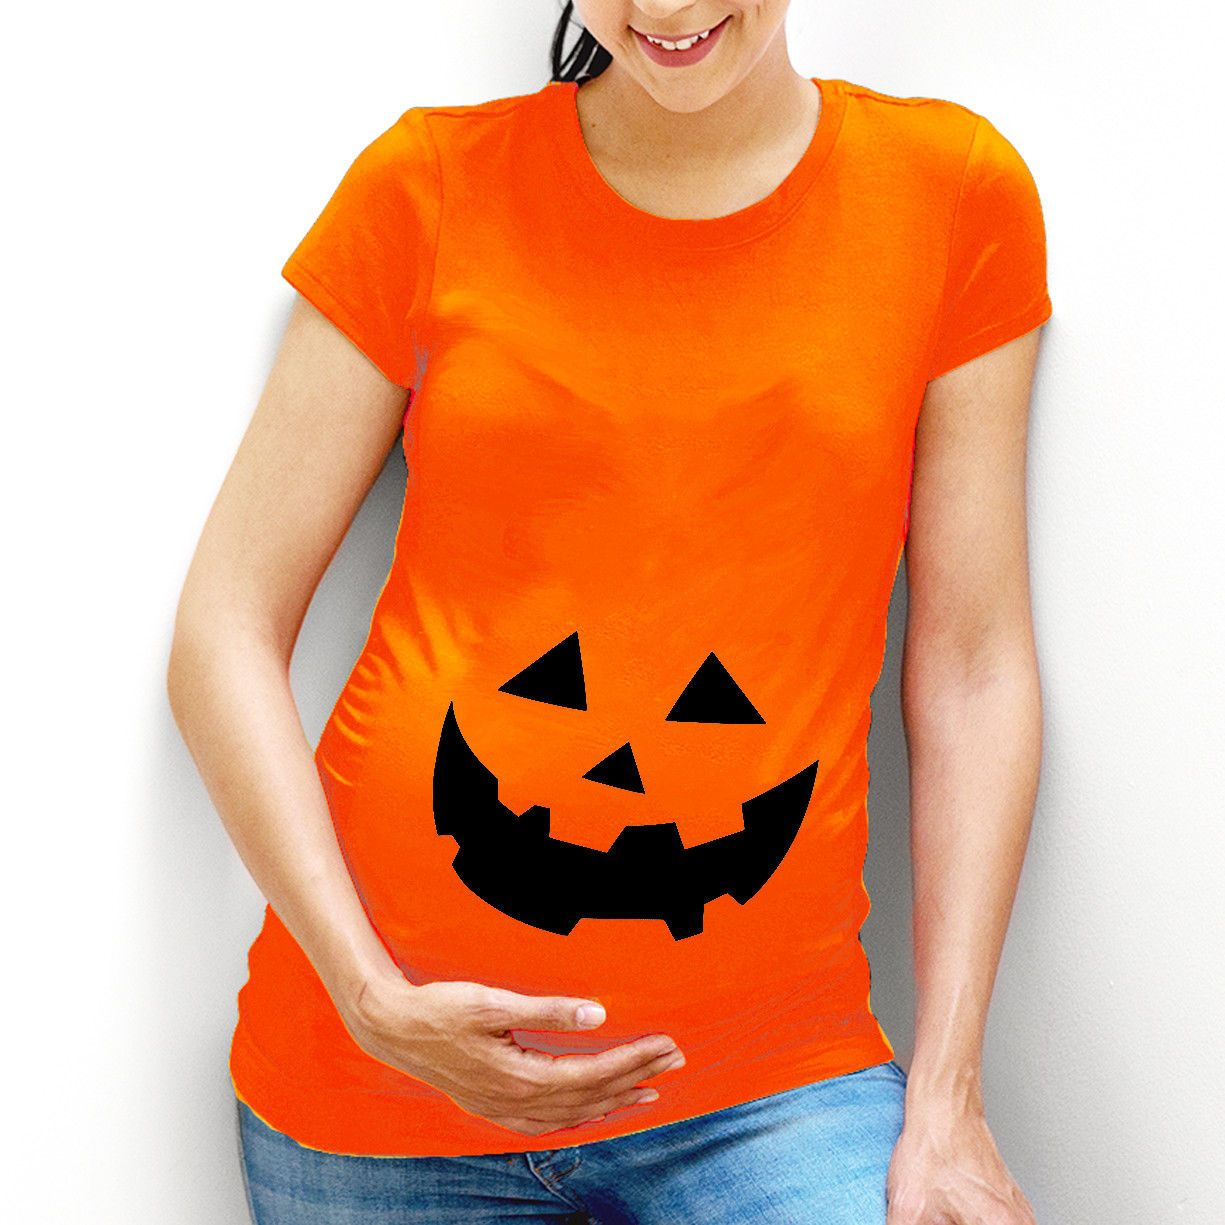 Funny Pumpkin Face Maternity TShirt Top Costume Idea